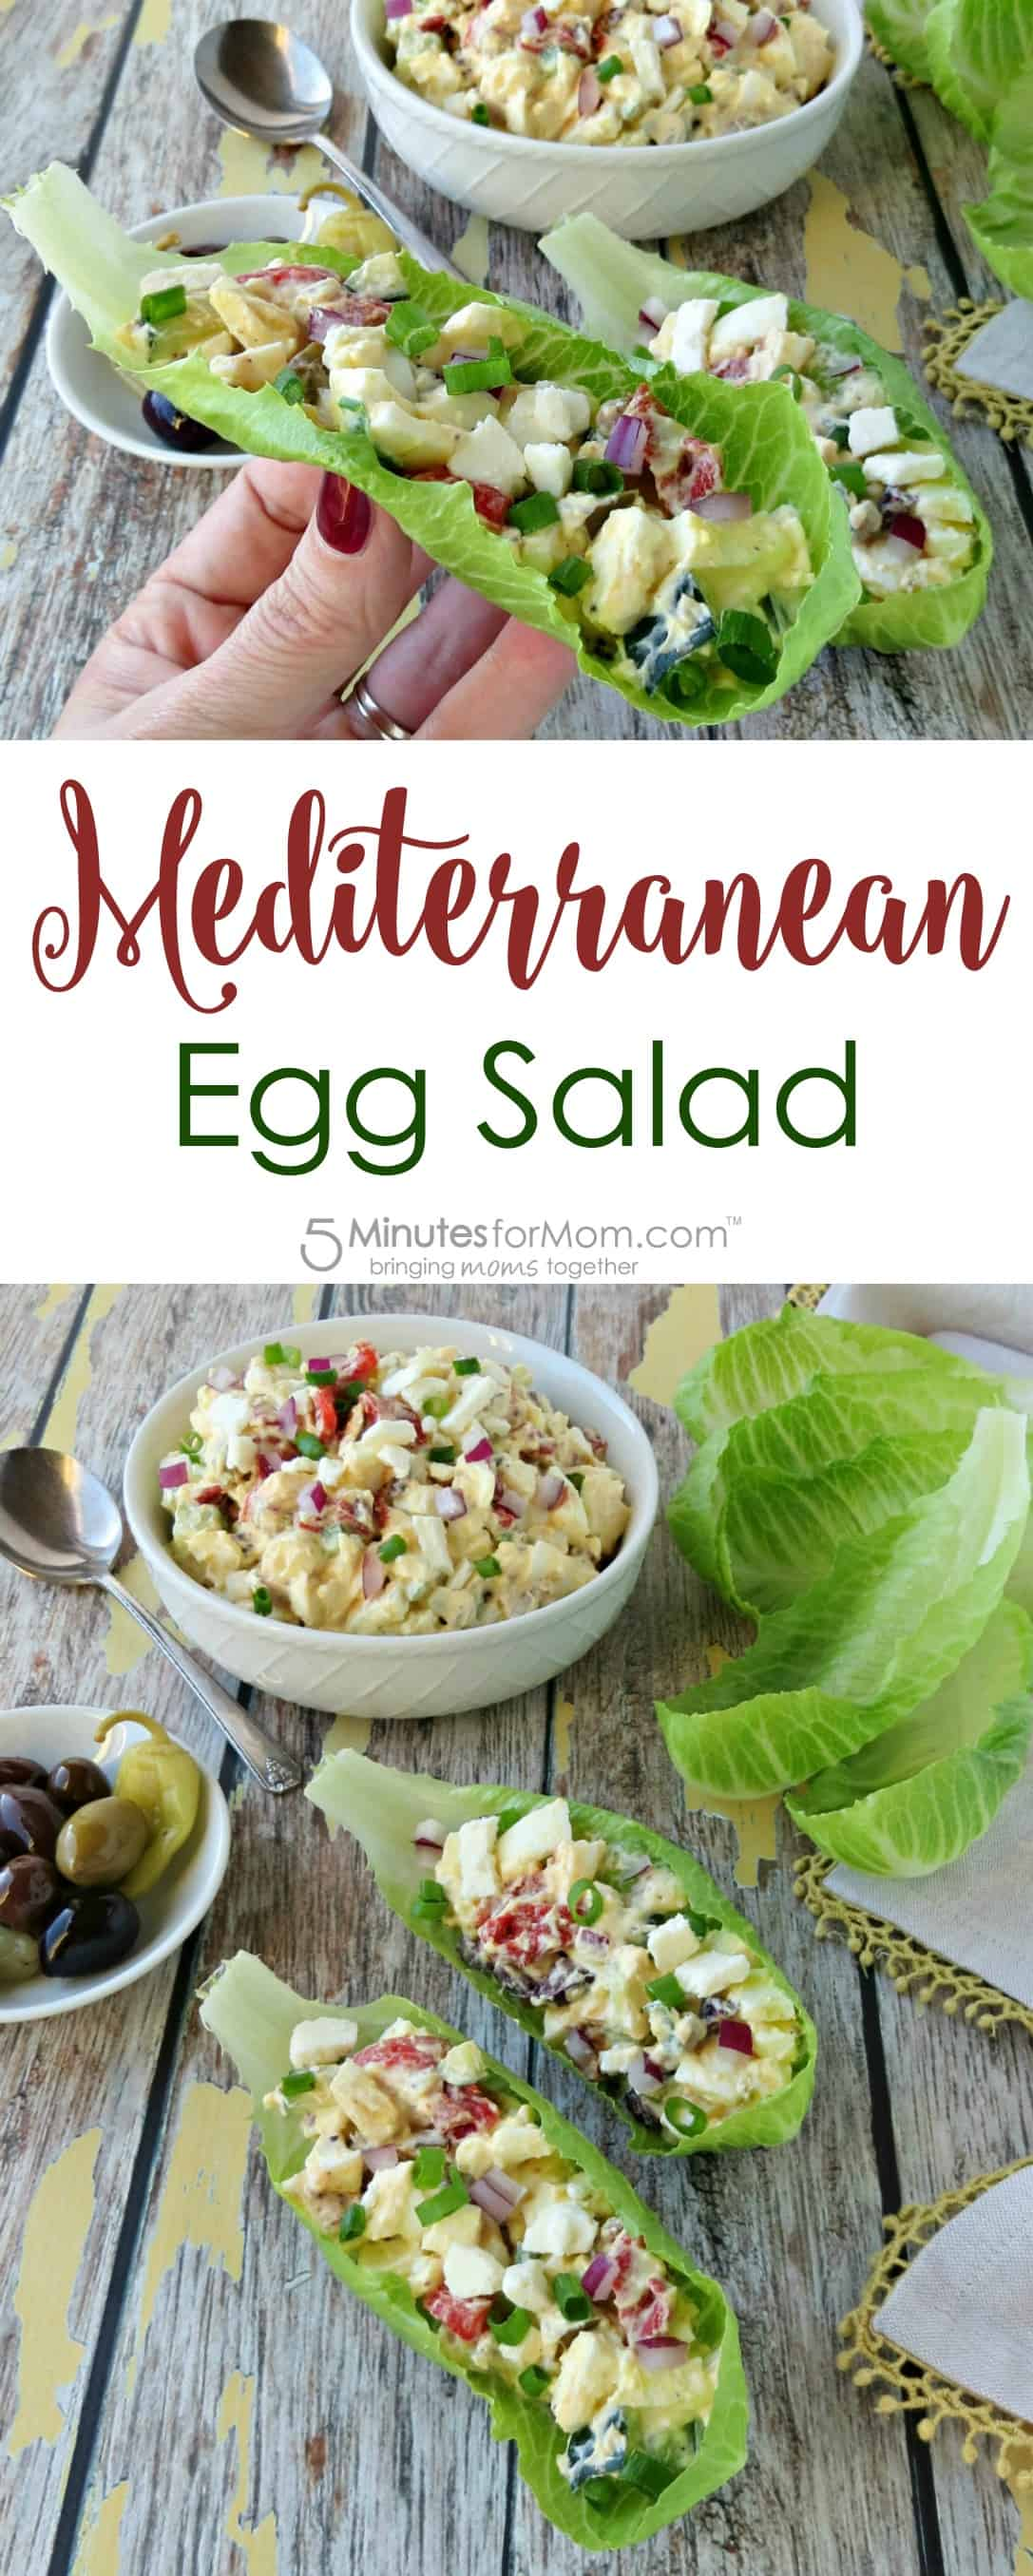 Mediterranean Egg Salad in Lettuce Wraps Recipe